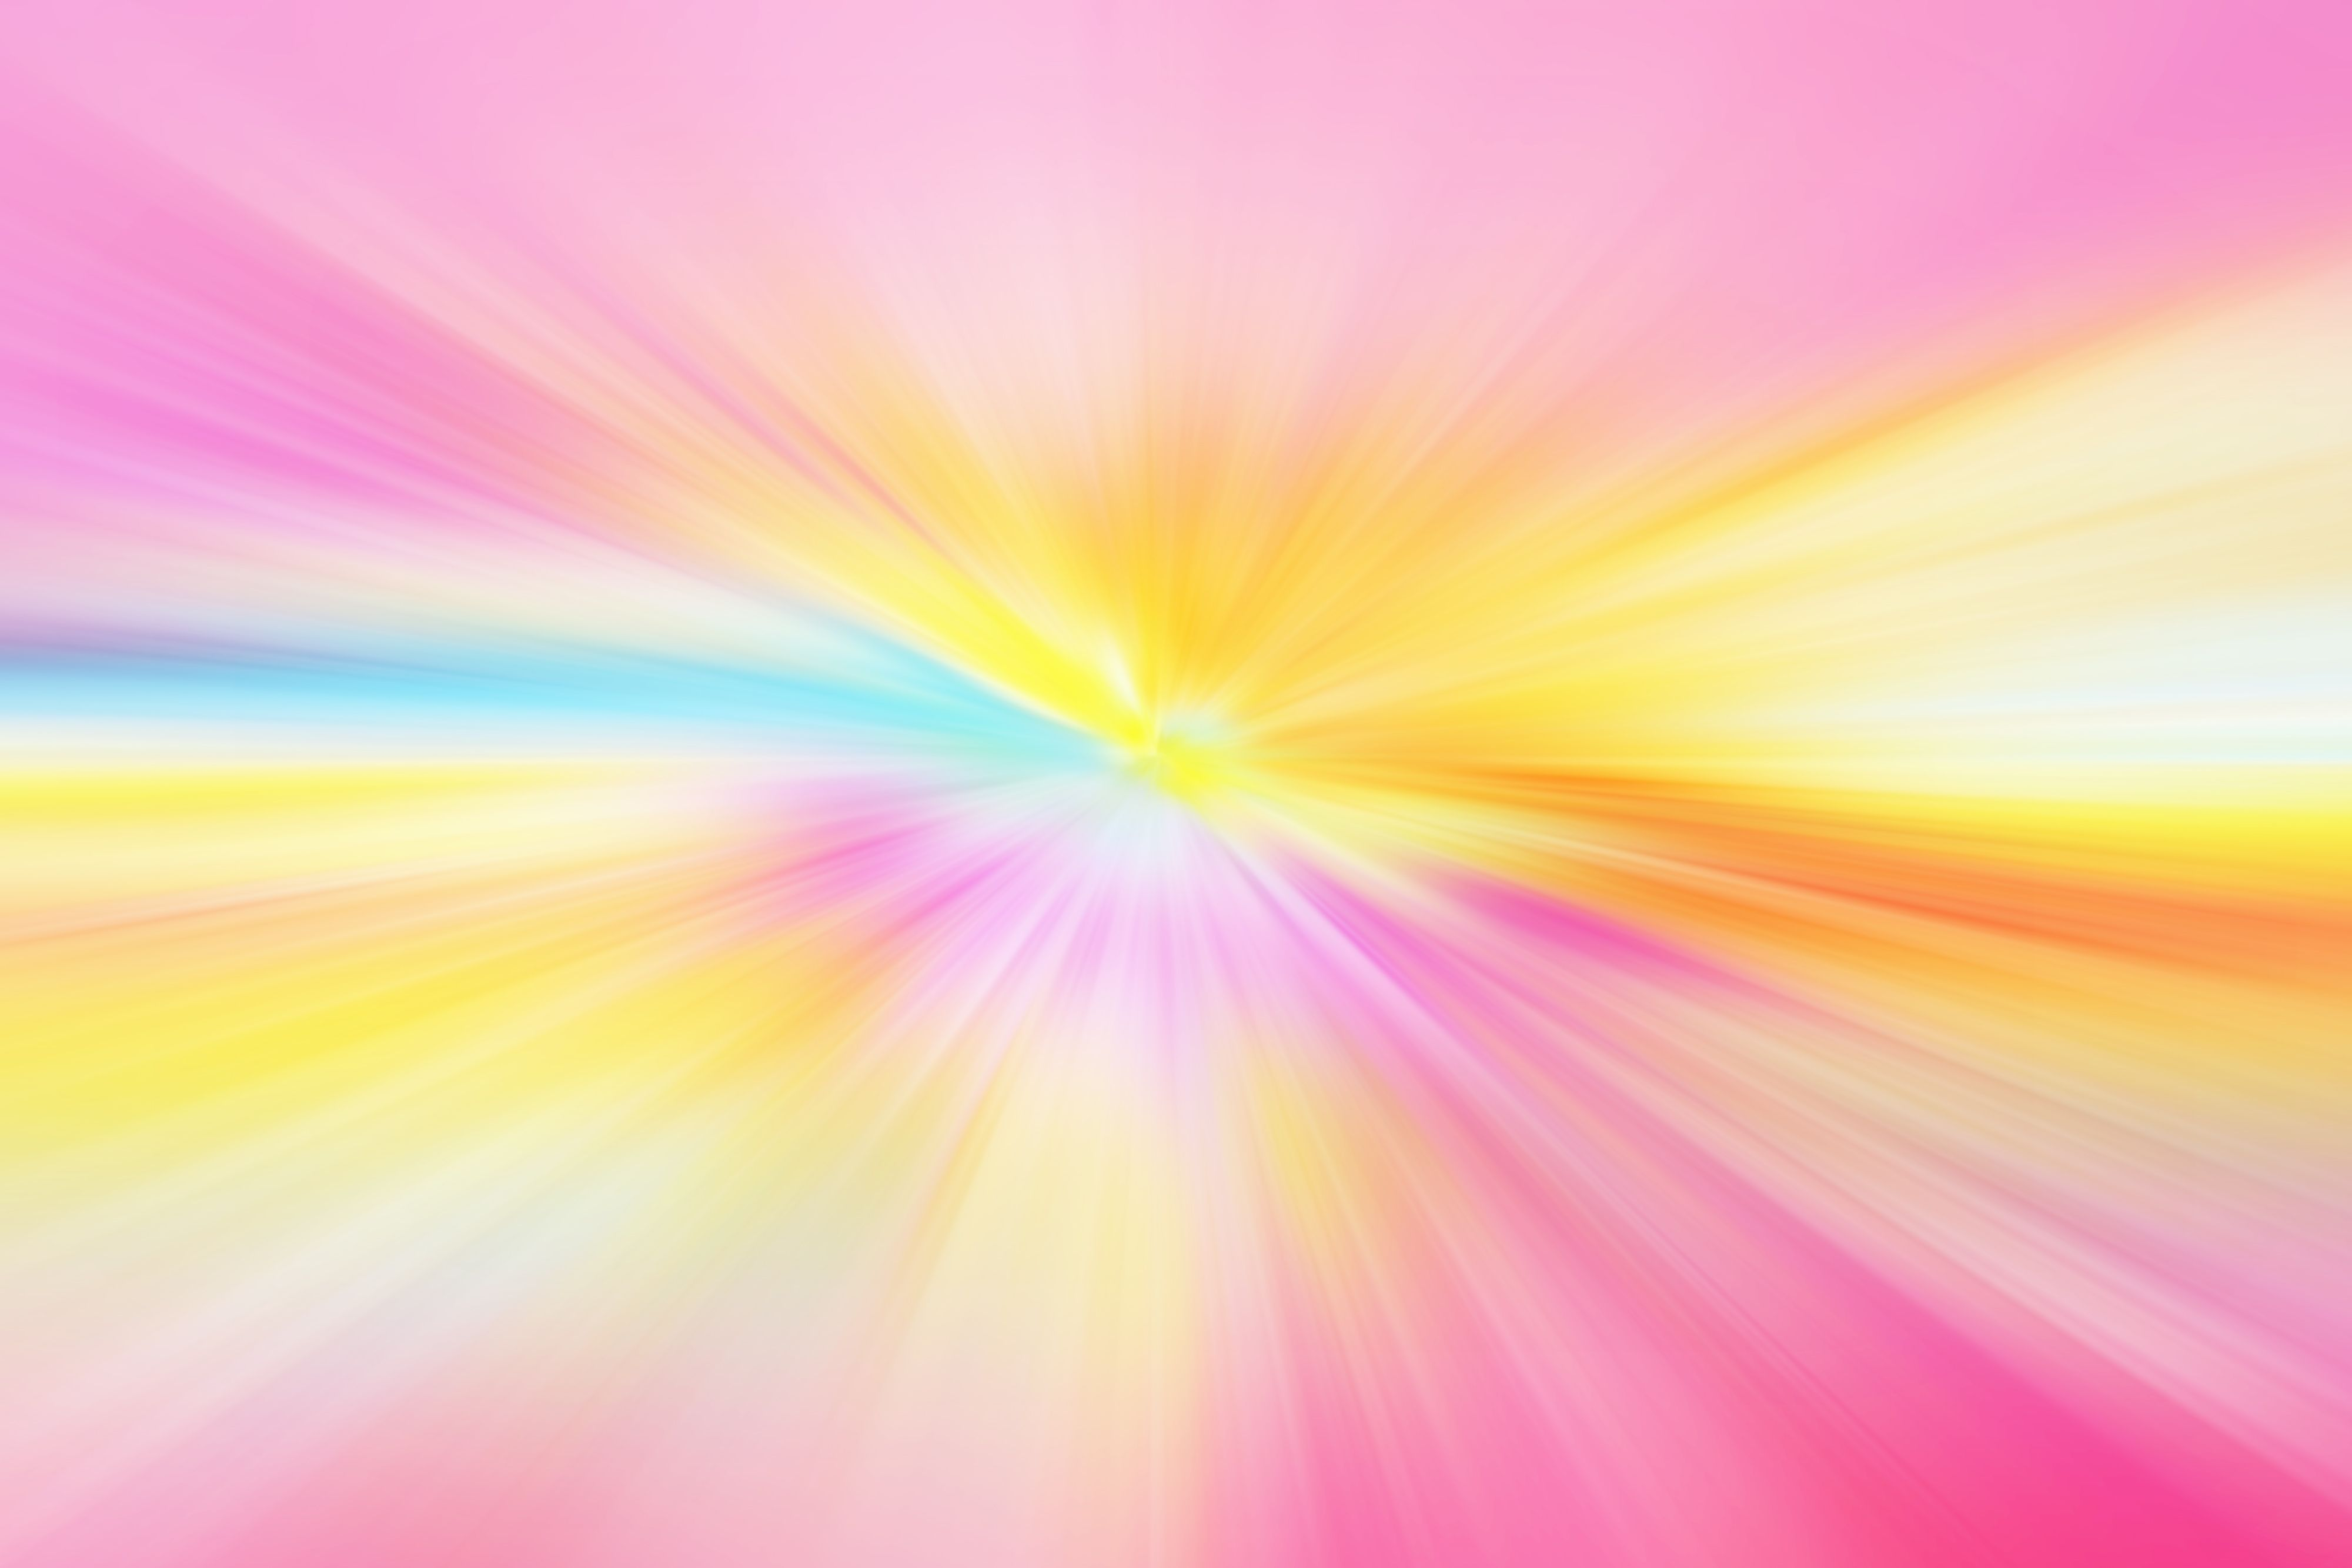 Awesome zoom motion effect abstract background. Beautiful